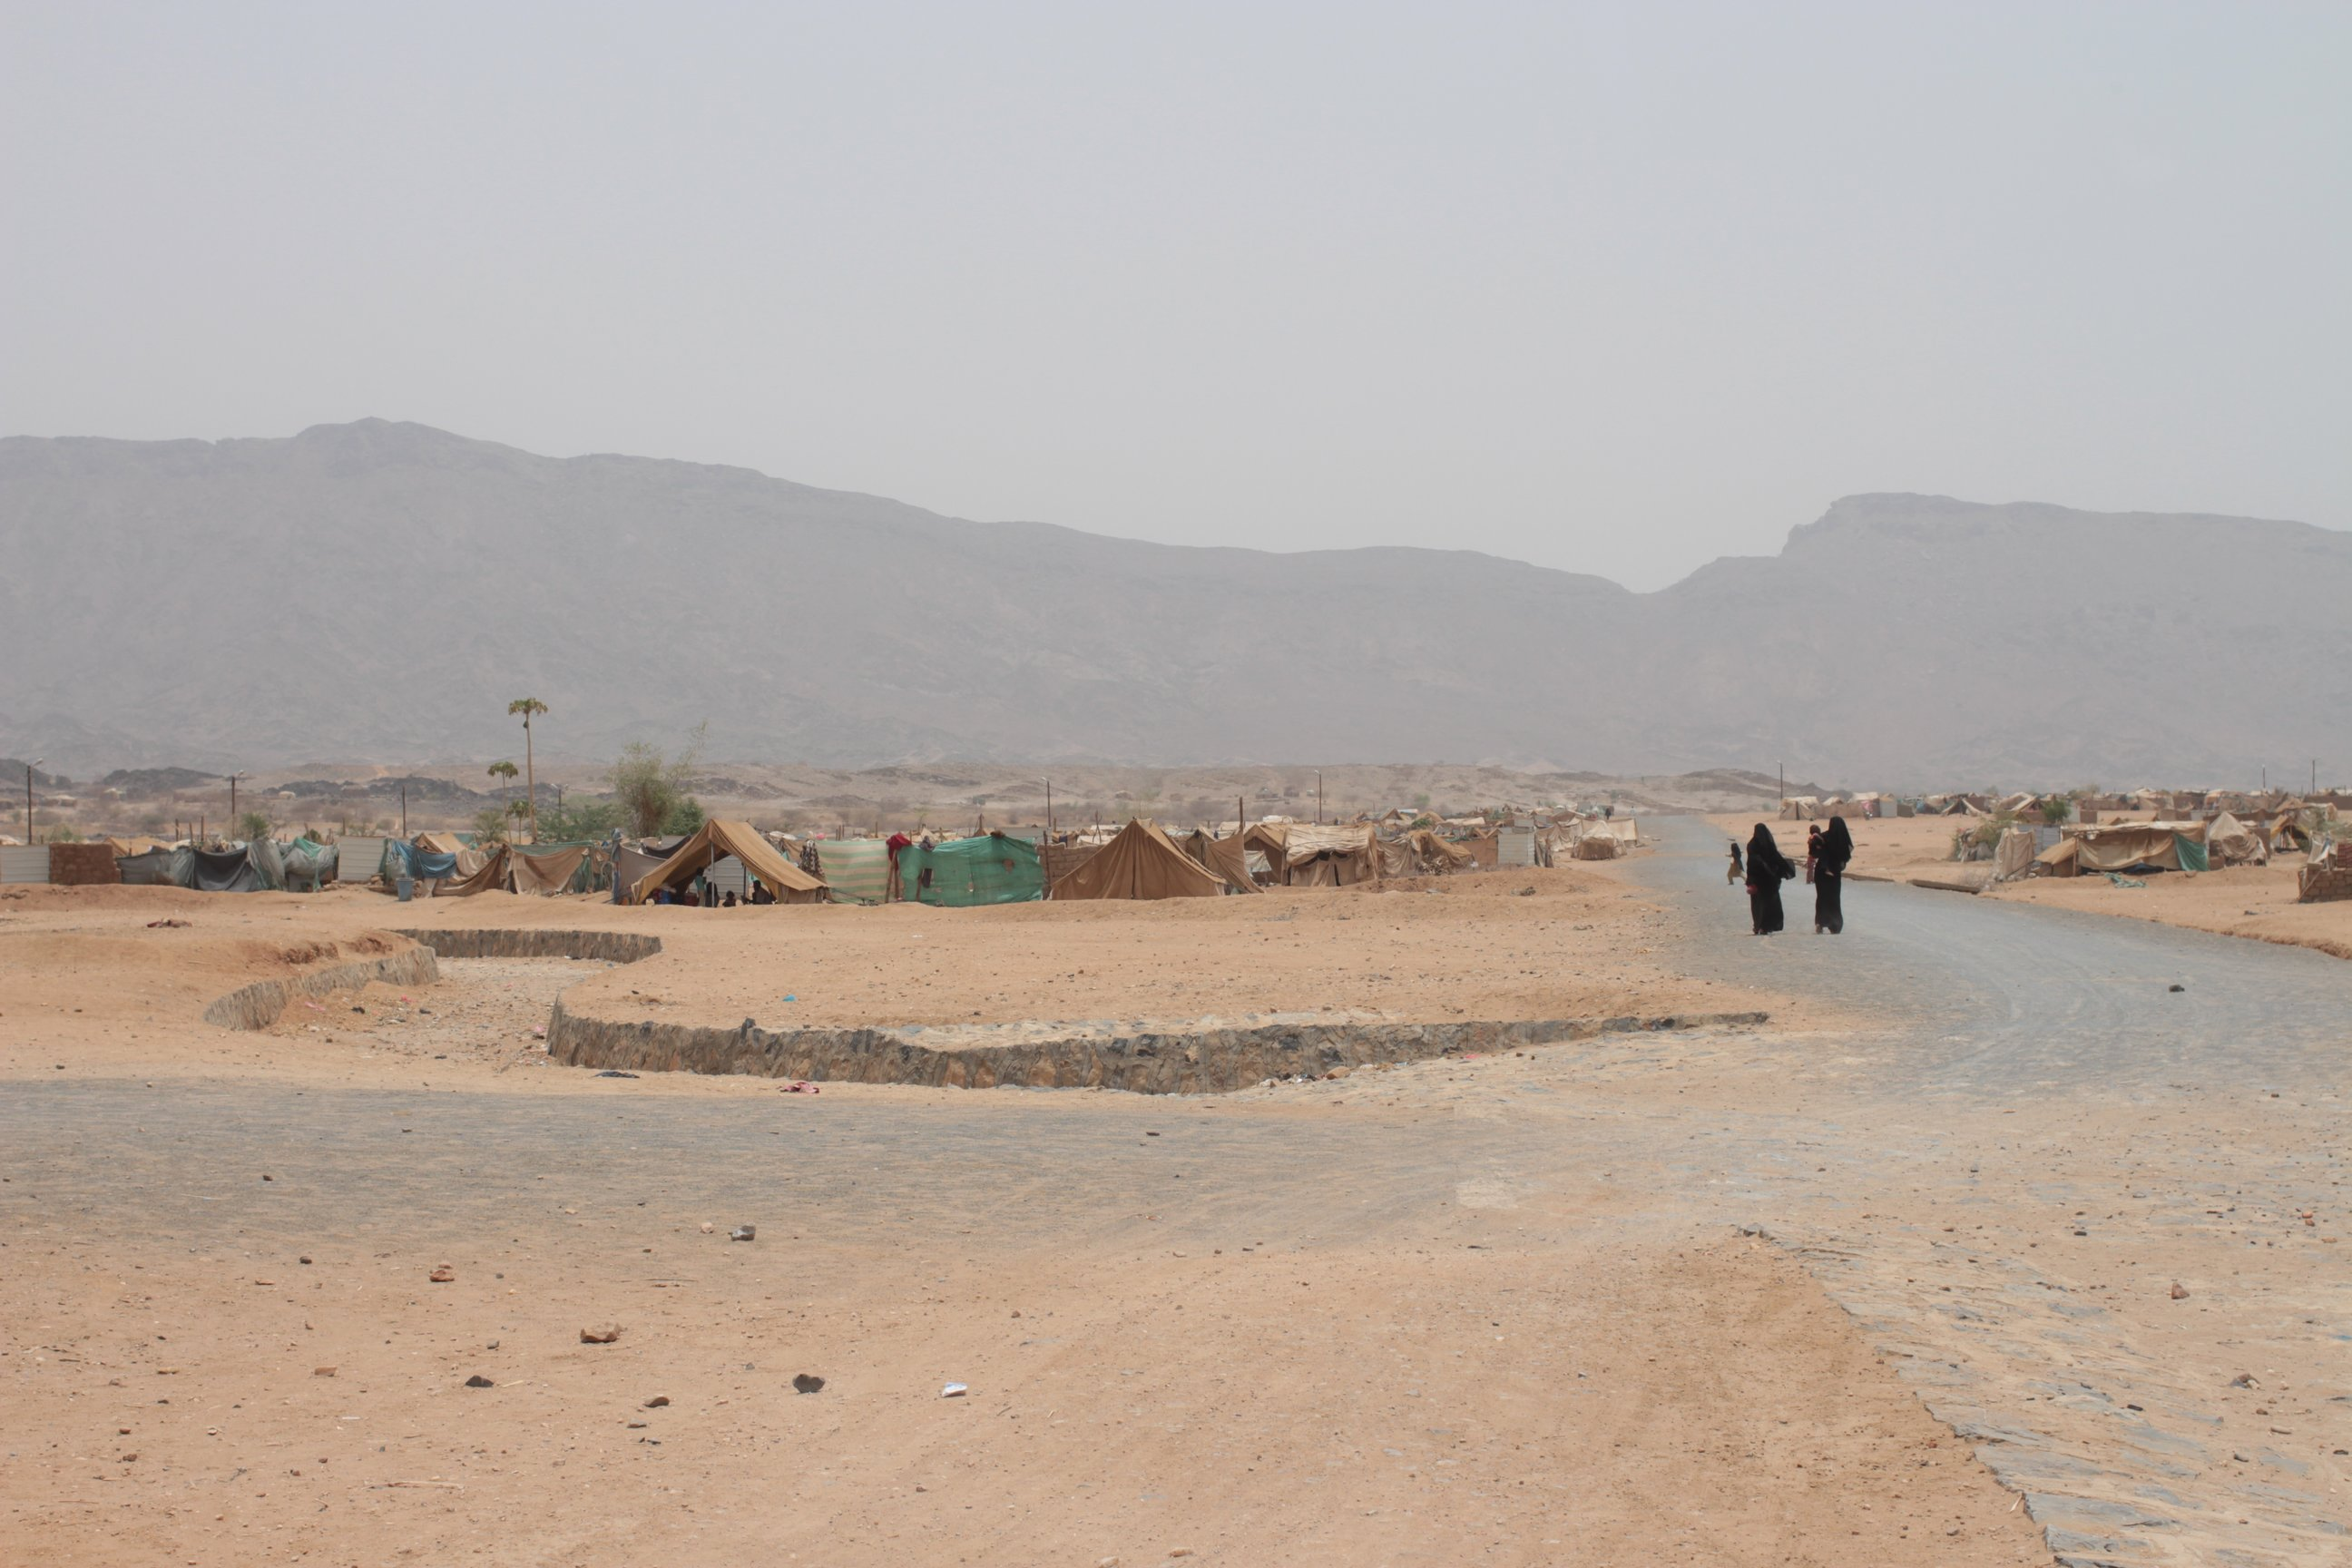 Displaced persons in Mazraq (3) camp in northern Yemen are still not ready to return to Sa'dah following the conflict (May 2013)